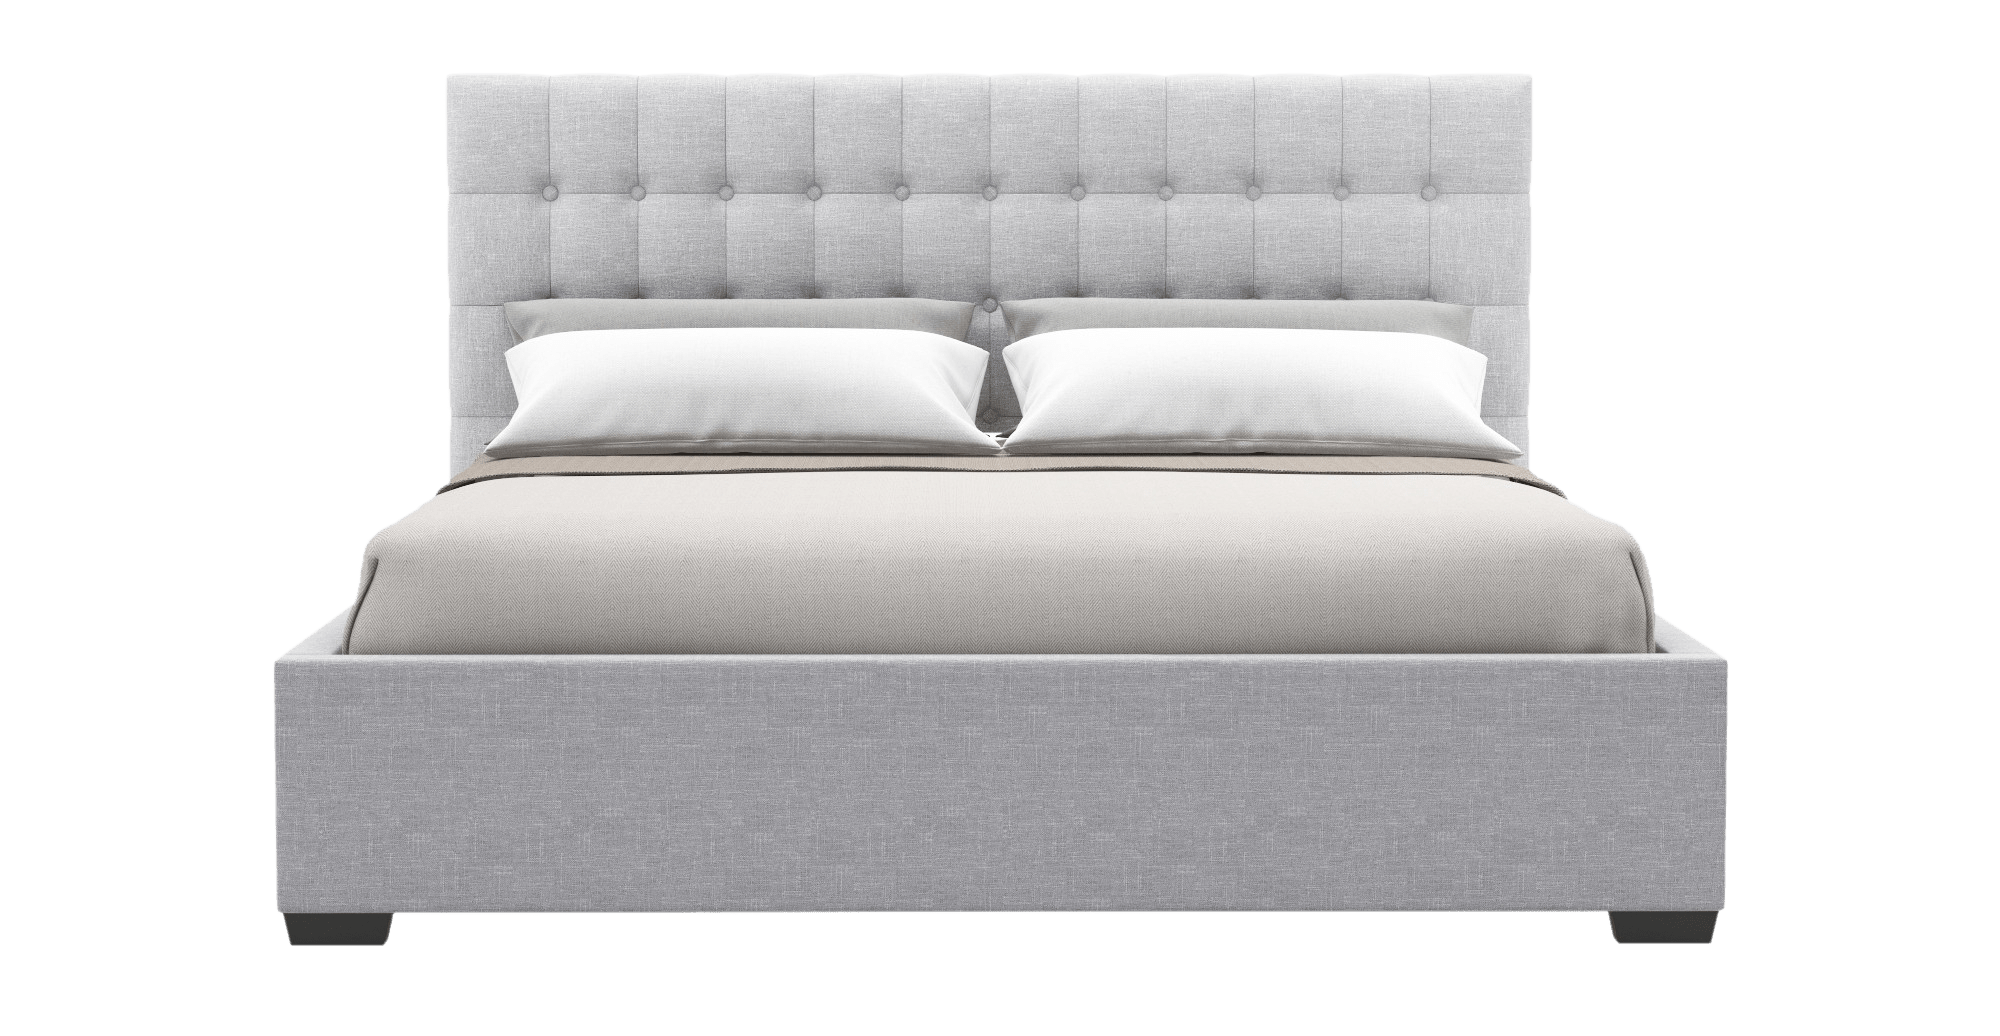 Buy A Bed Buy Leia Gas Lift King Size Bed Frame Online In Australia